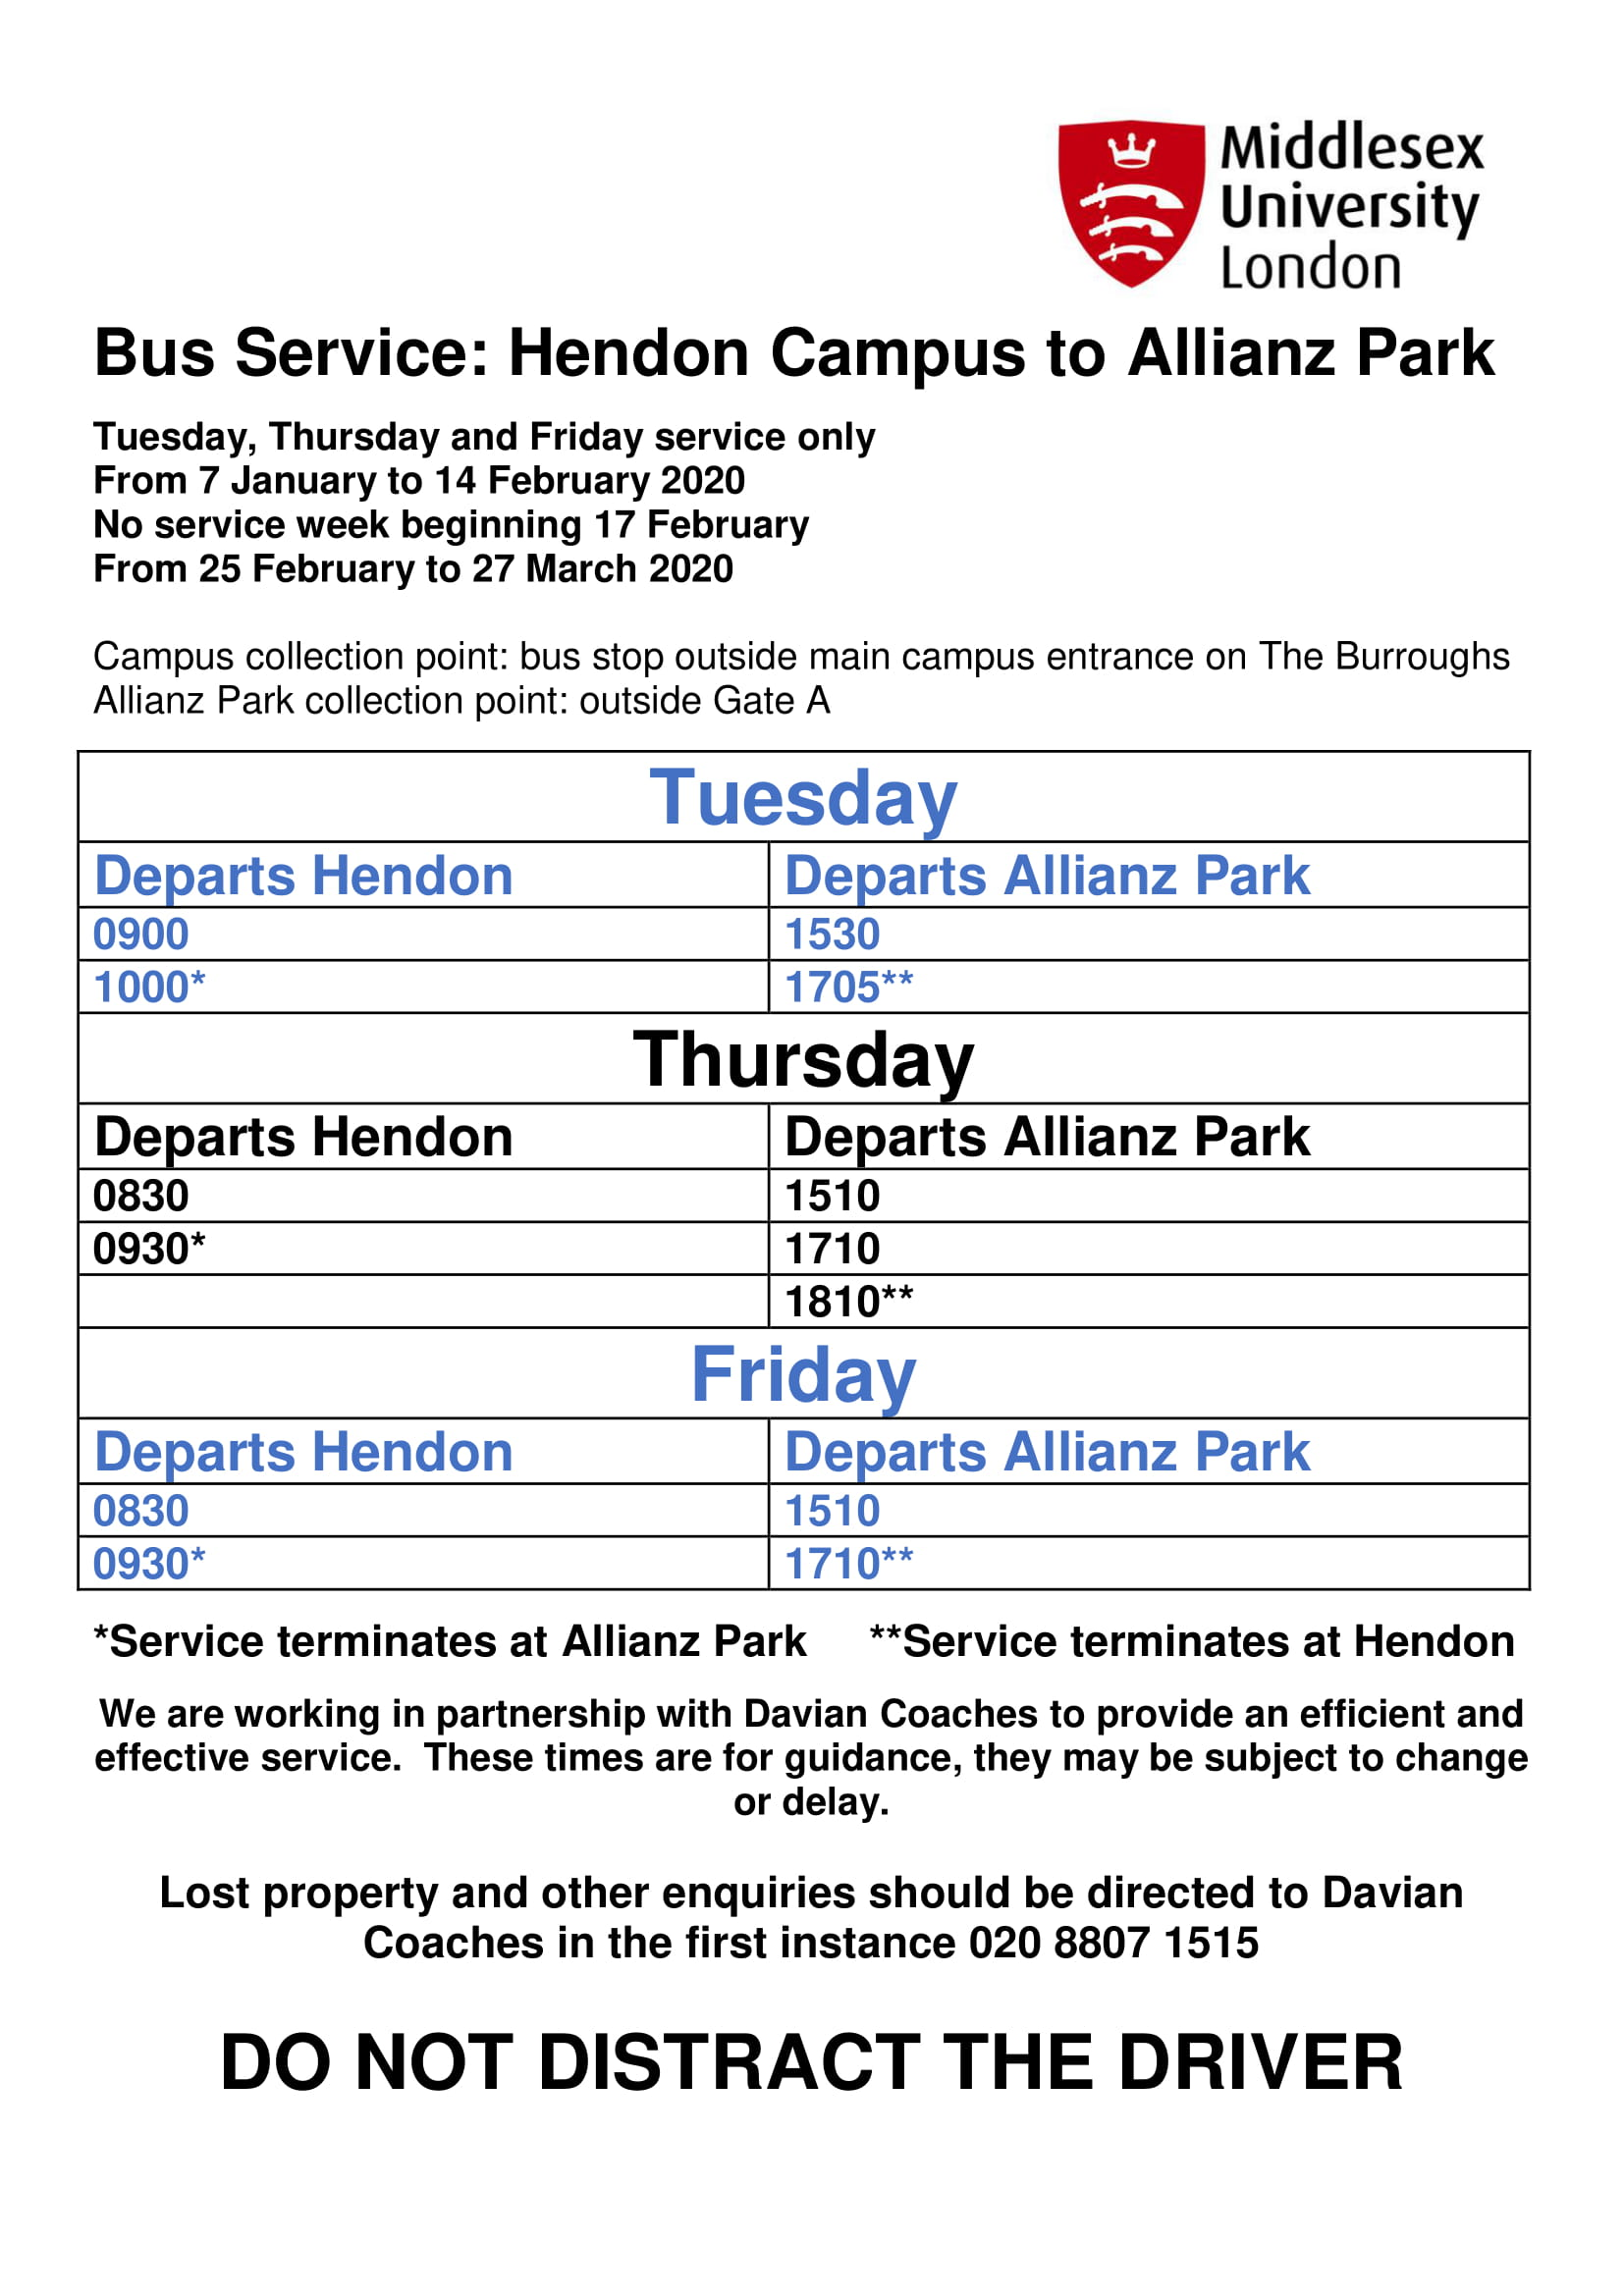 Image document showing times of shuttle bus services to and from Allianz Park